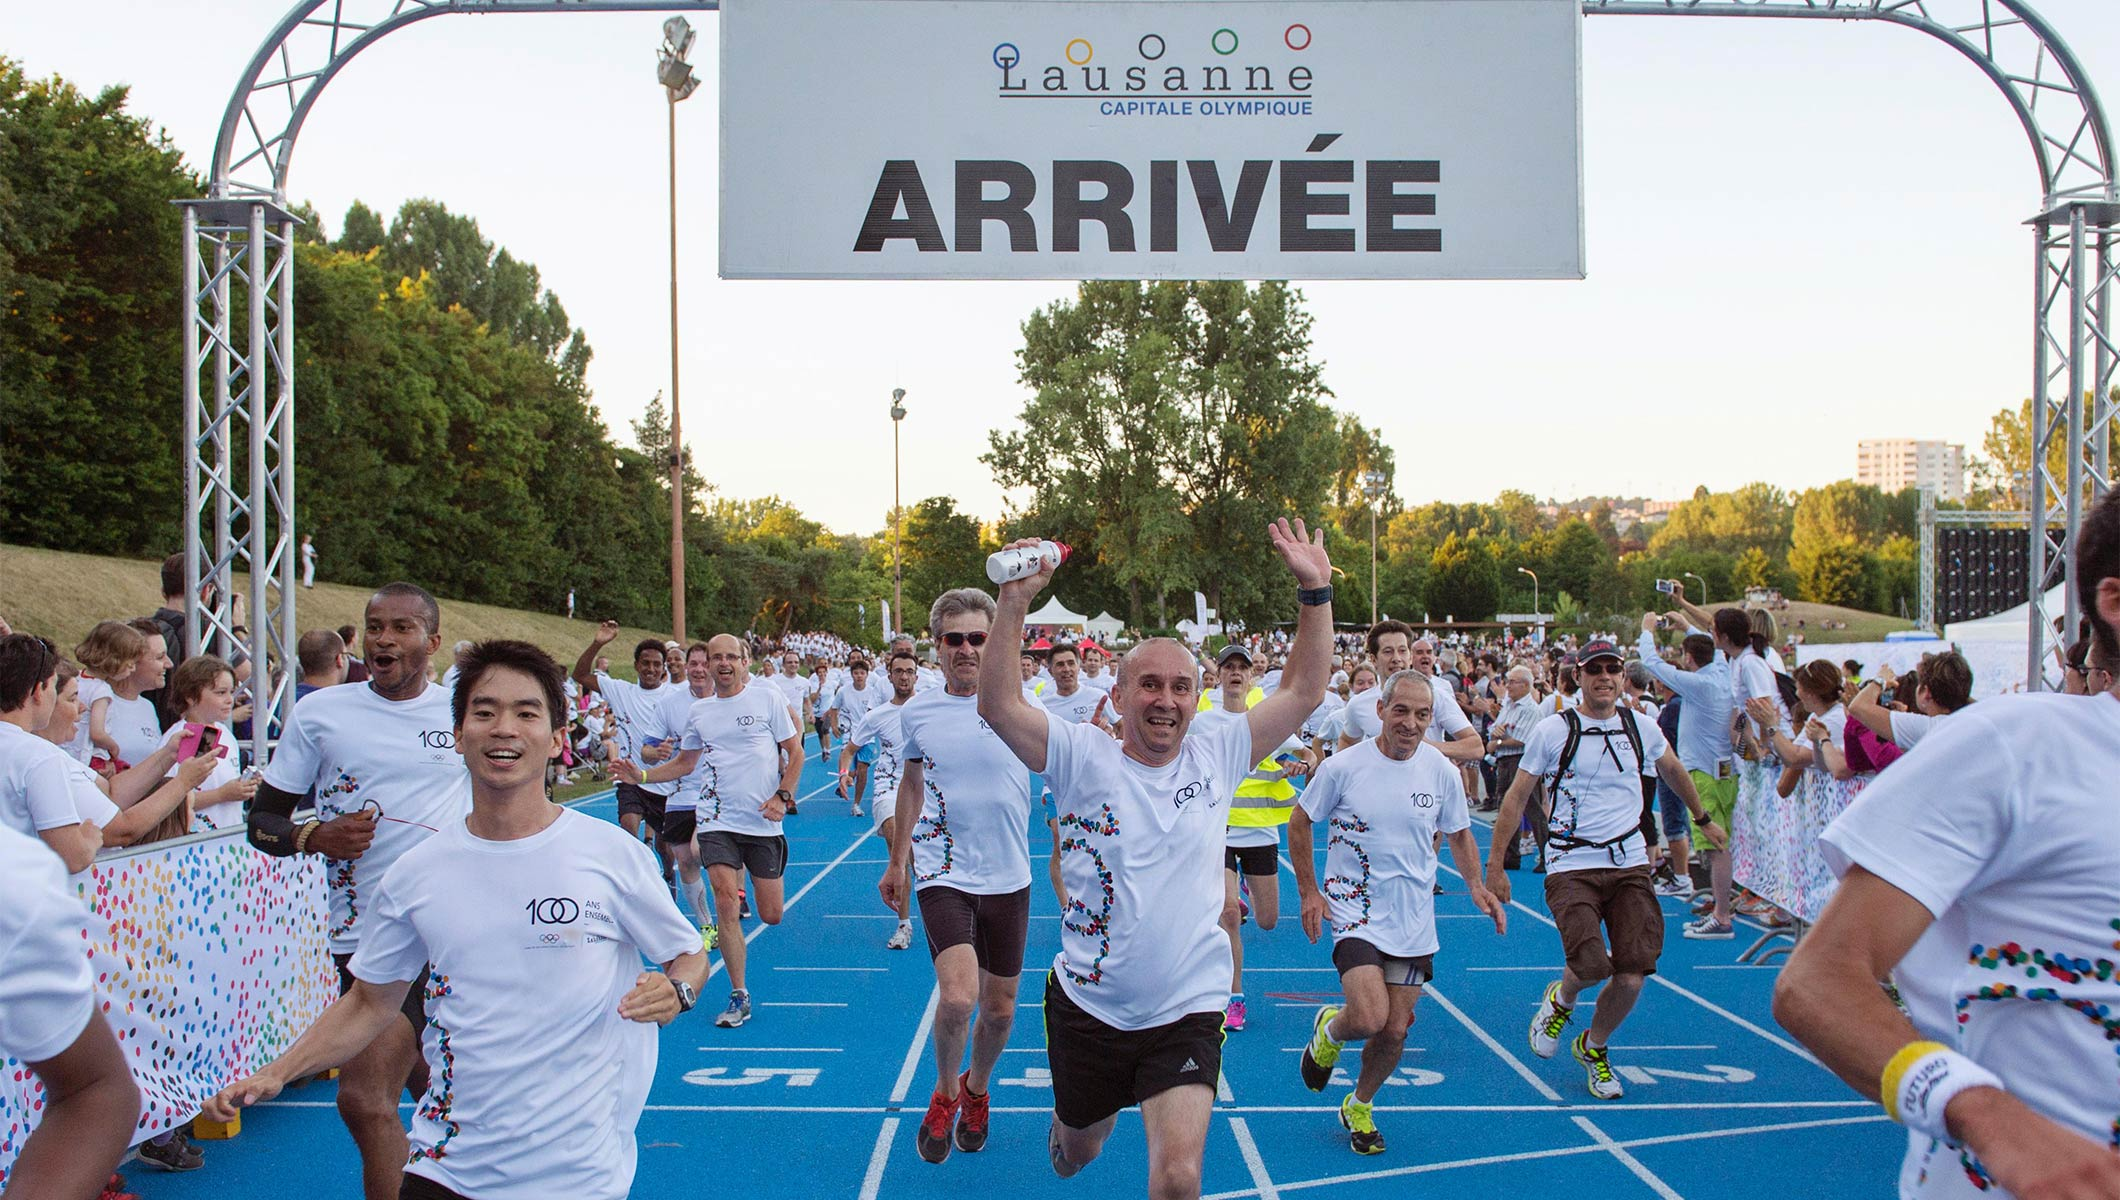 Olympic superstars get active in Lausanne for Olympic Day